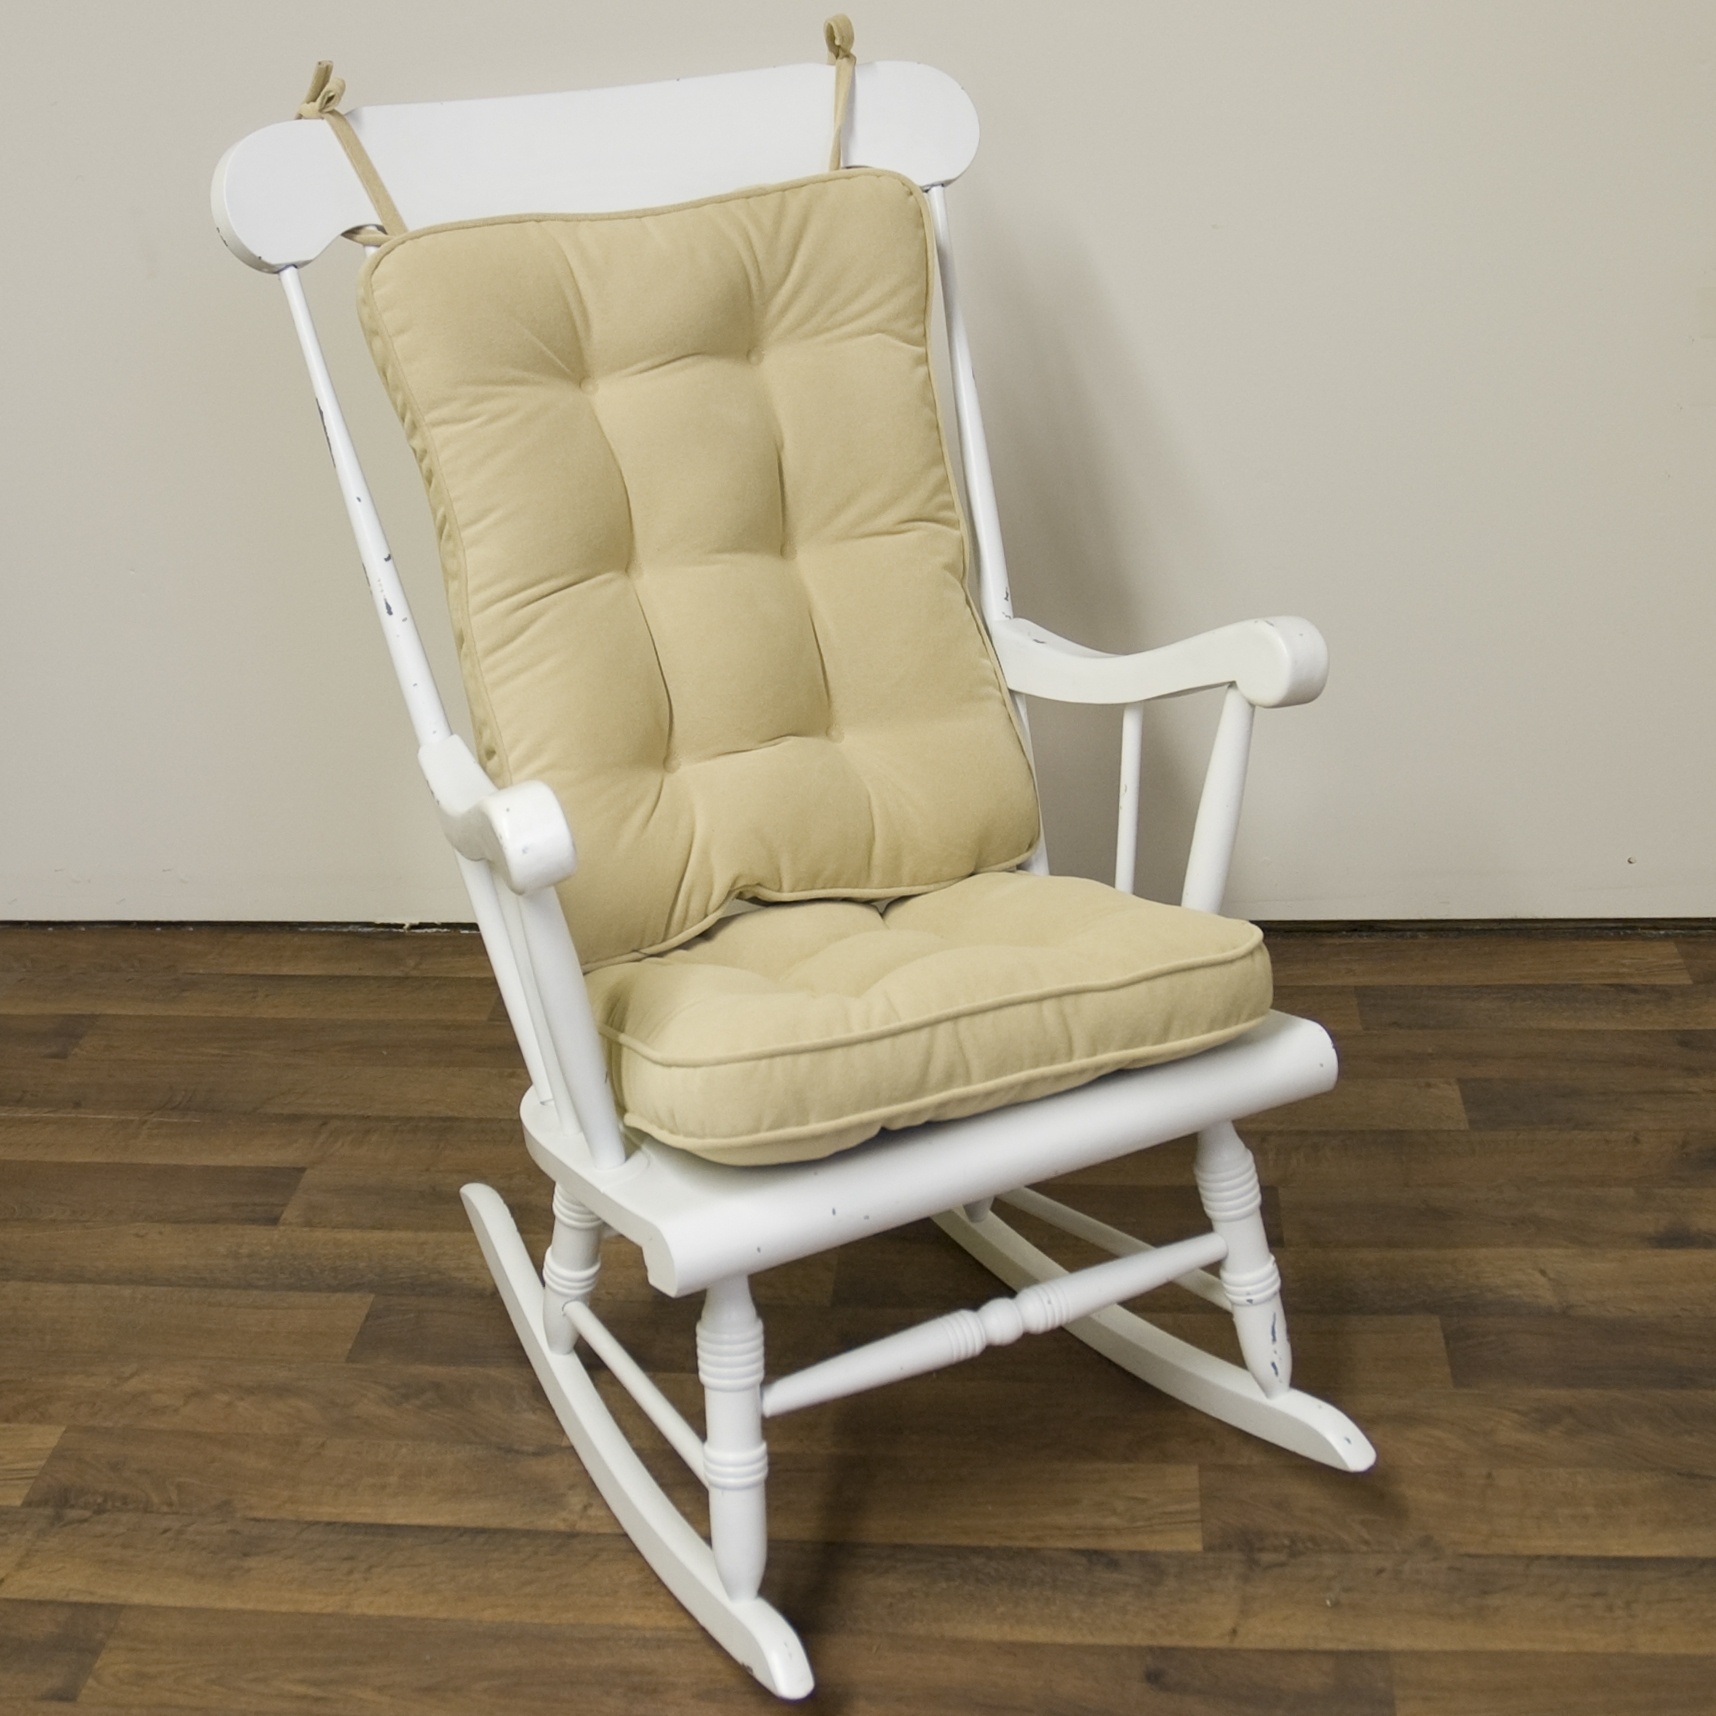 Widely Used Rocking Chair From Ikea – Kevinjohnsonformayor With Regard To Rocking Chairs At Ikea (View 15 of 15)